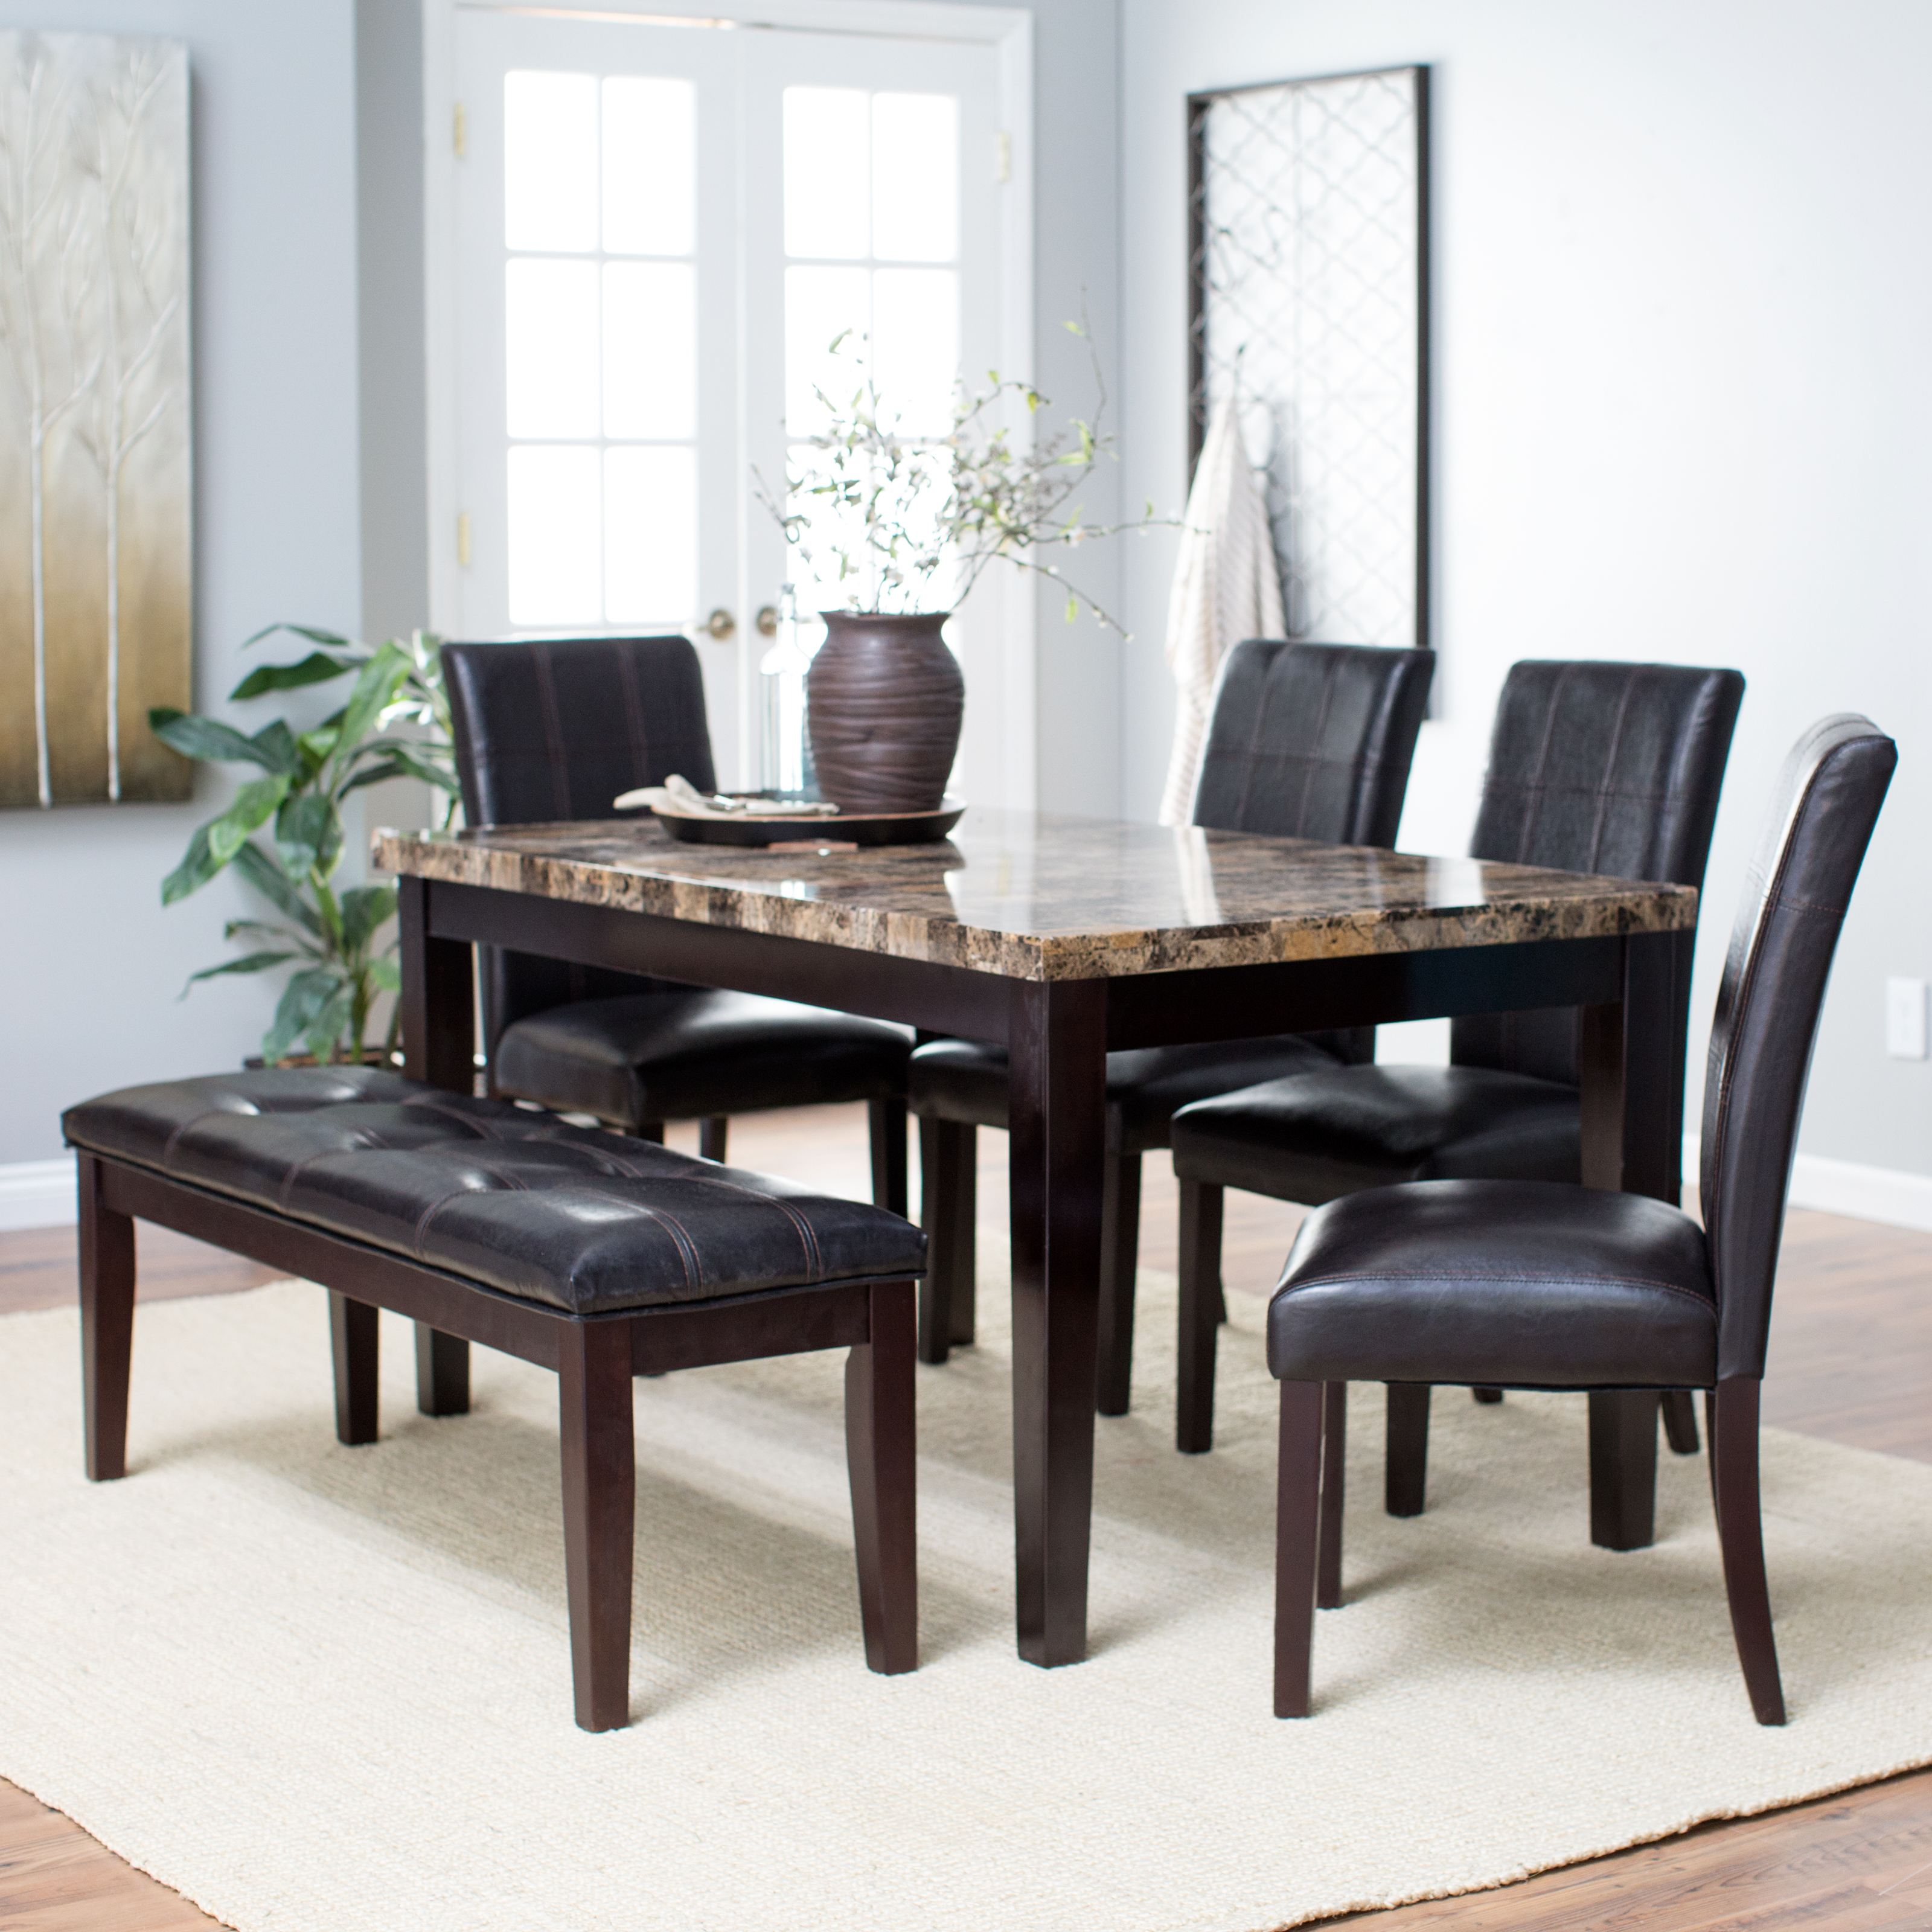 finley home palazzo 6 piece dining set with bench dining